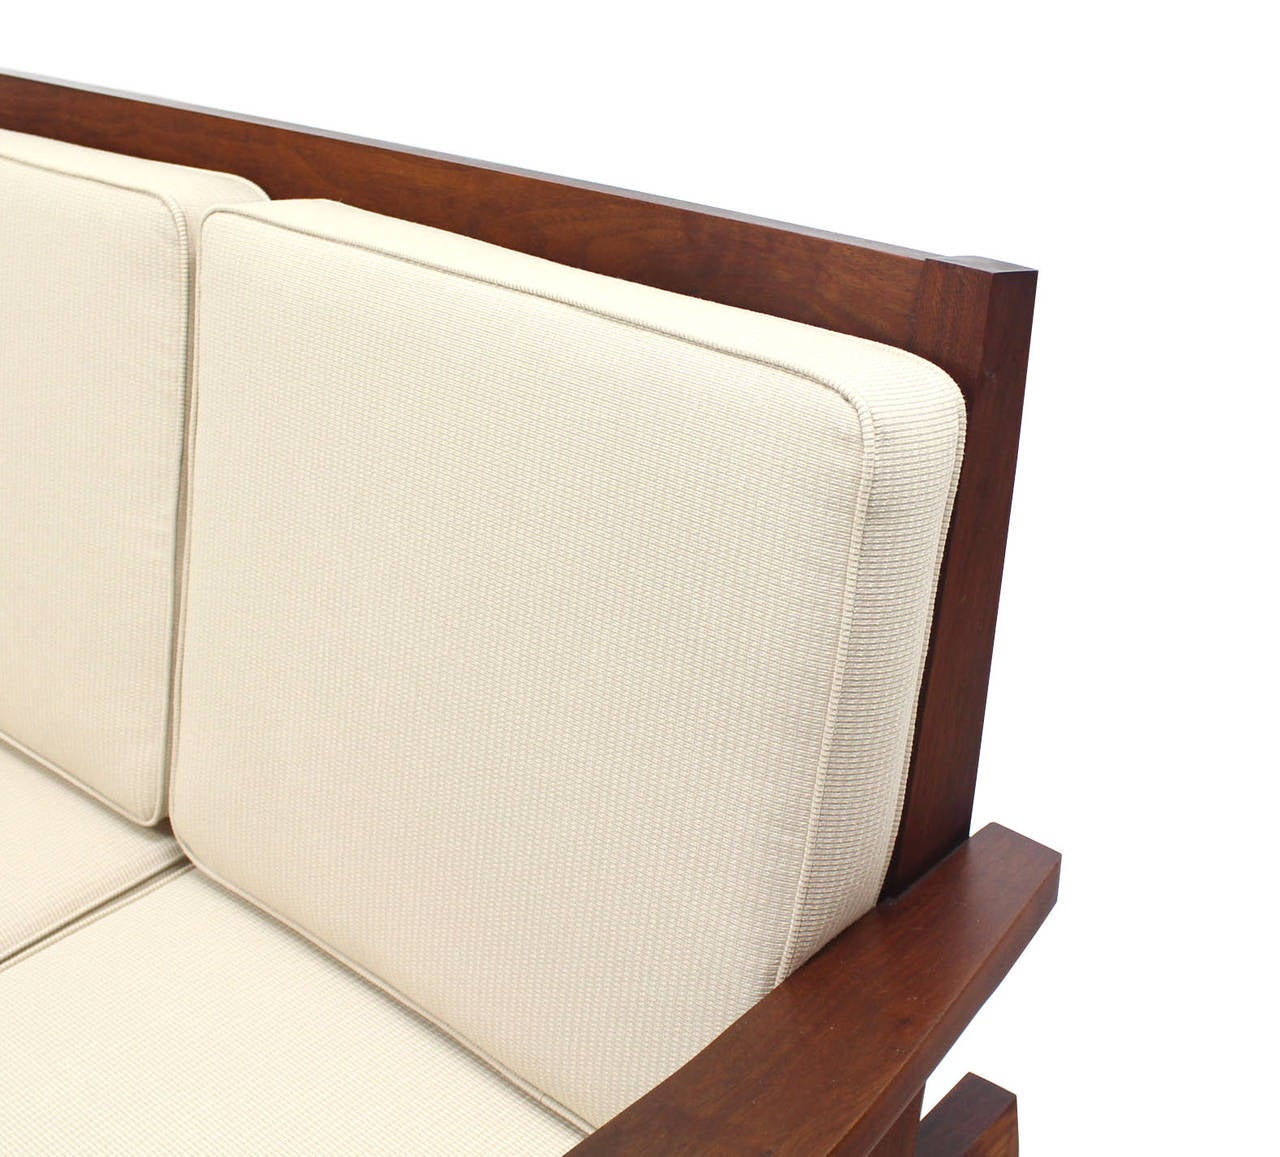 20th Century Pair of George Nakashima Style Walnut Settees with Arms New Upholstery For Sale